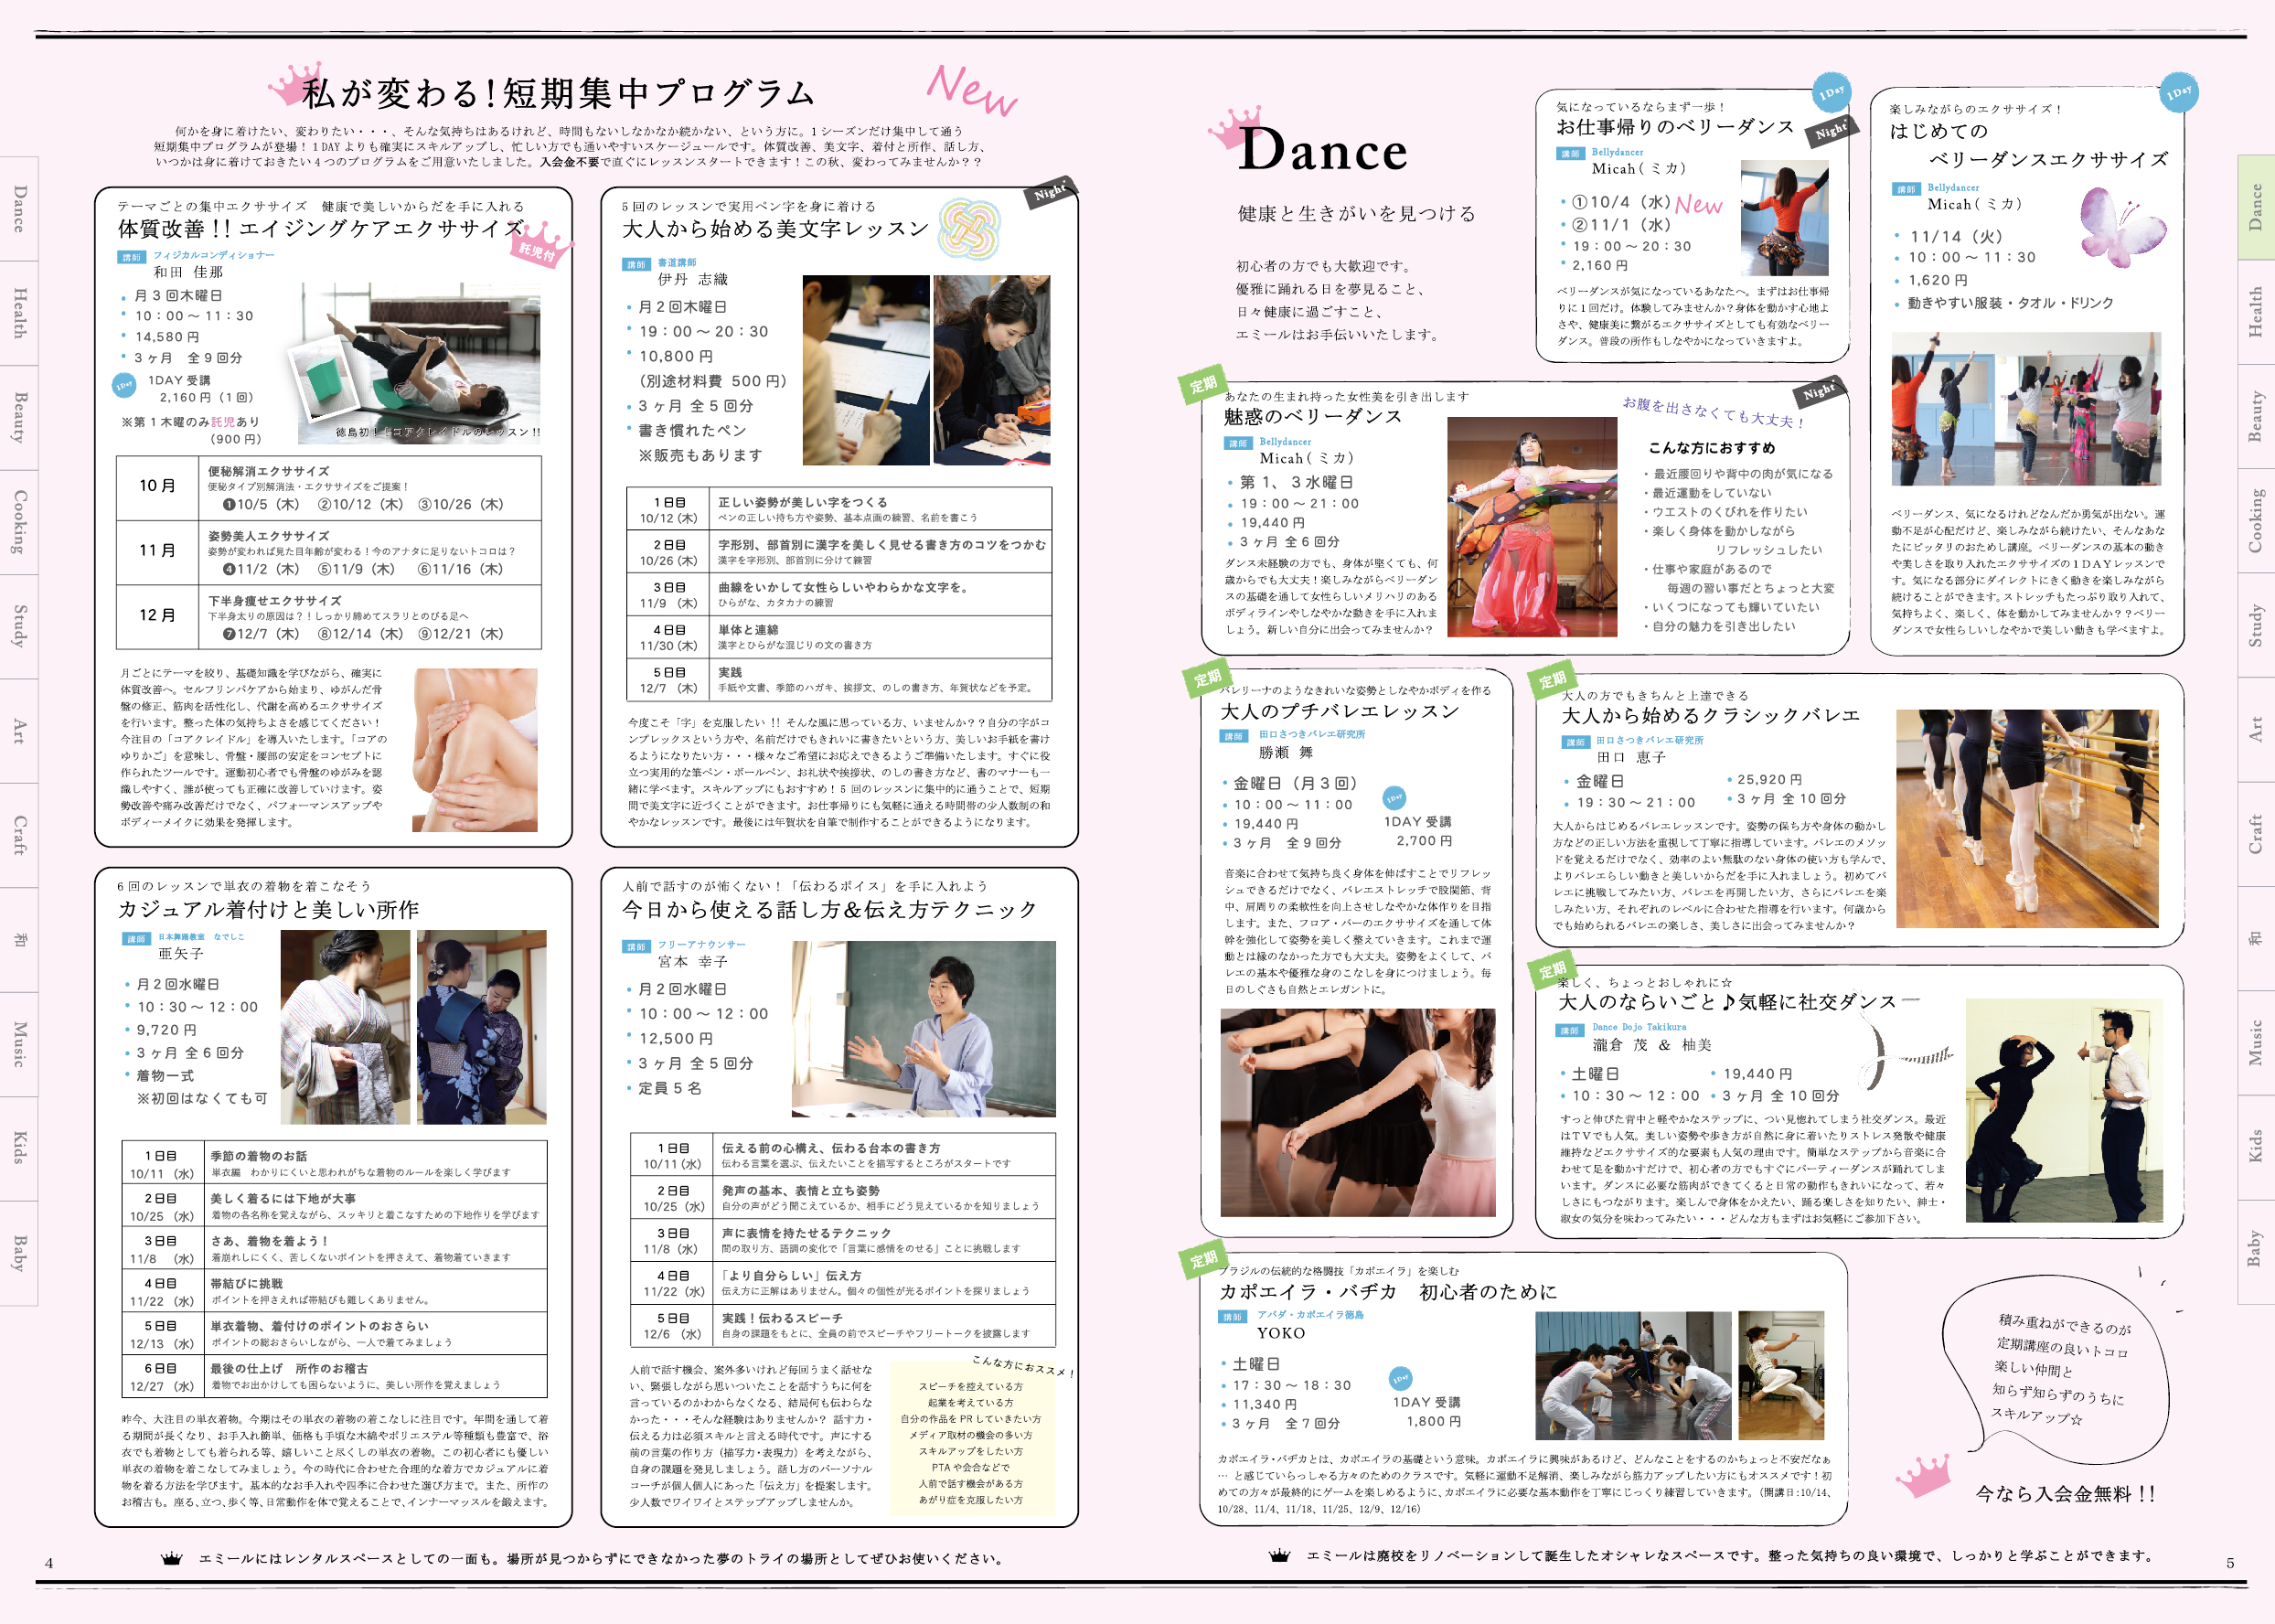 http://emile.jp/blog/wp-content/uploads/2014/03/A4冊子4P-P5-更新済み-1.jpg